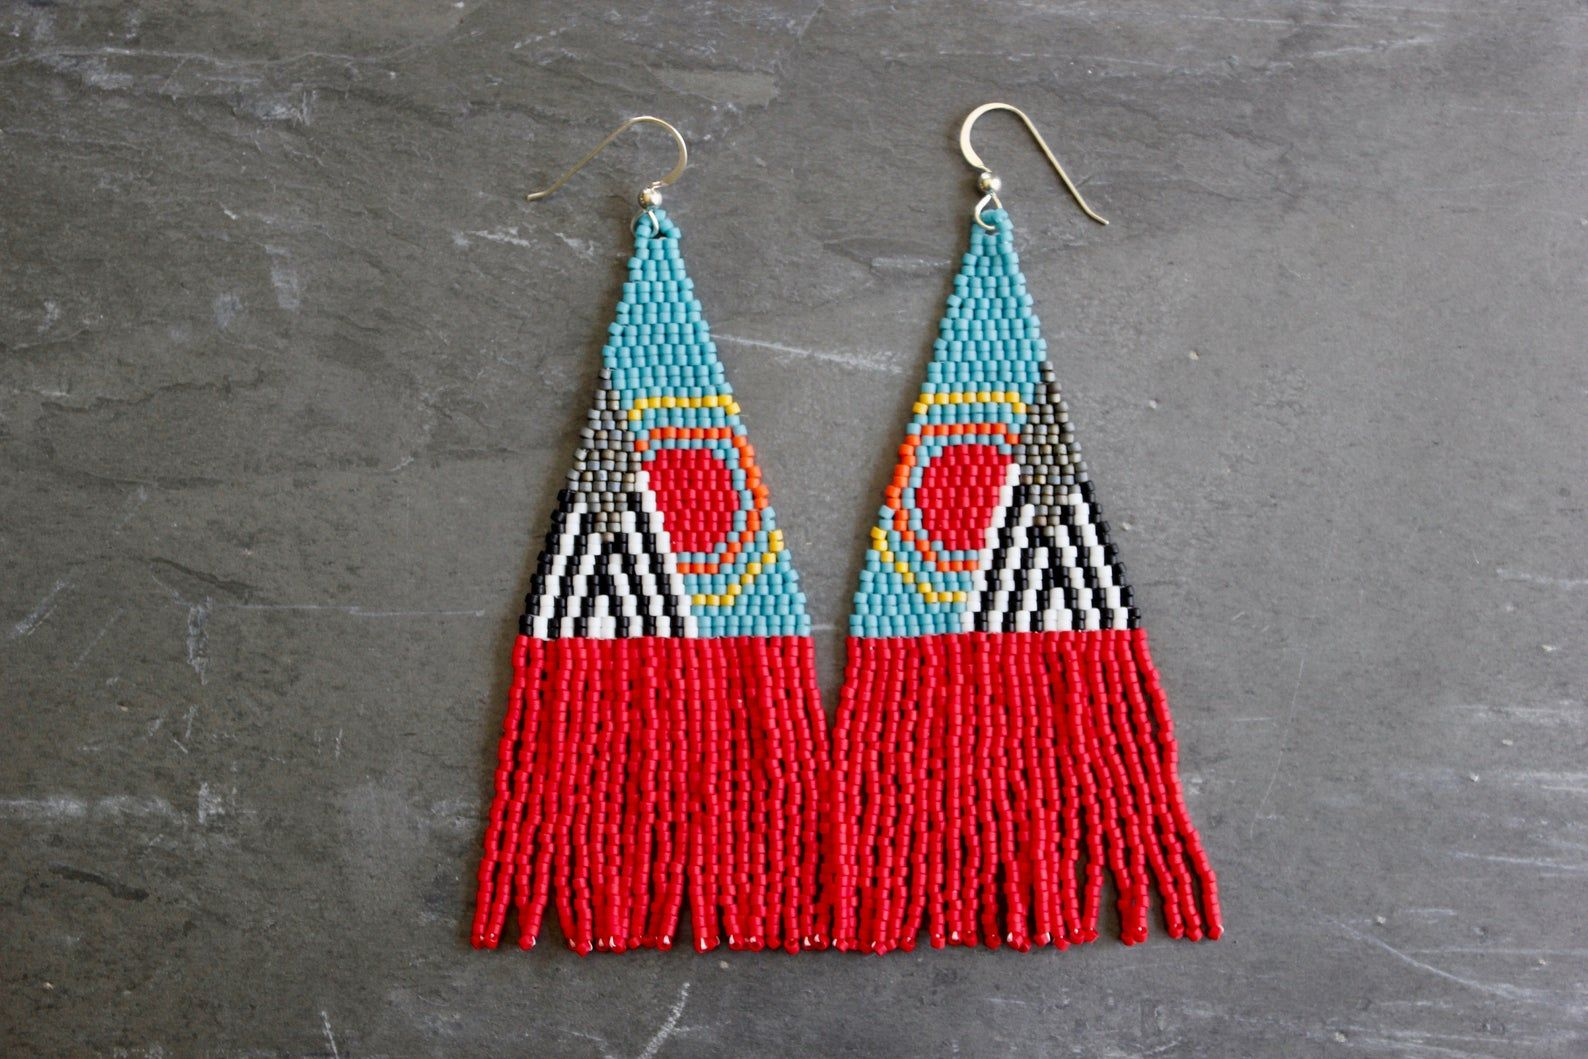 The Kings Mountain. Handwoven Earrings. Seed Bead Earrings. Fringe Earrings.